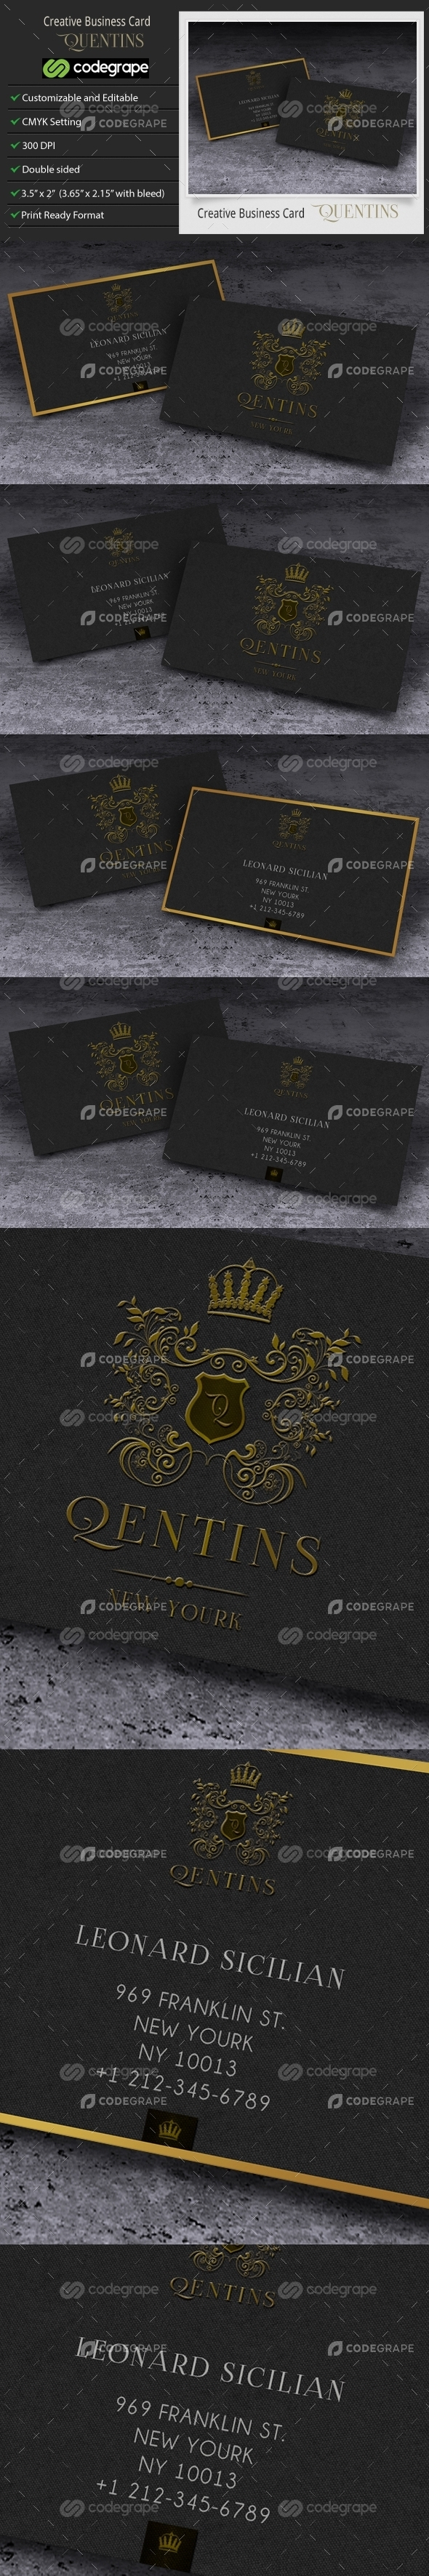 Creative Business Card or Corporate Business Card - Quentins